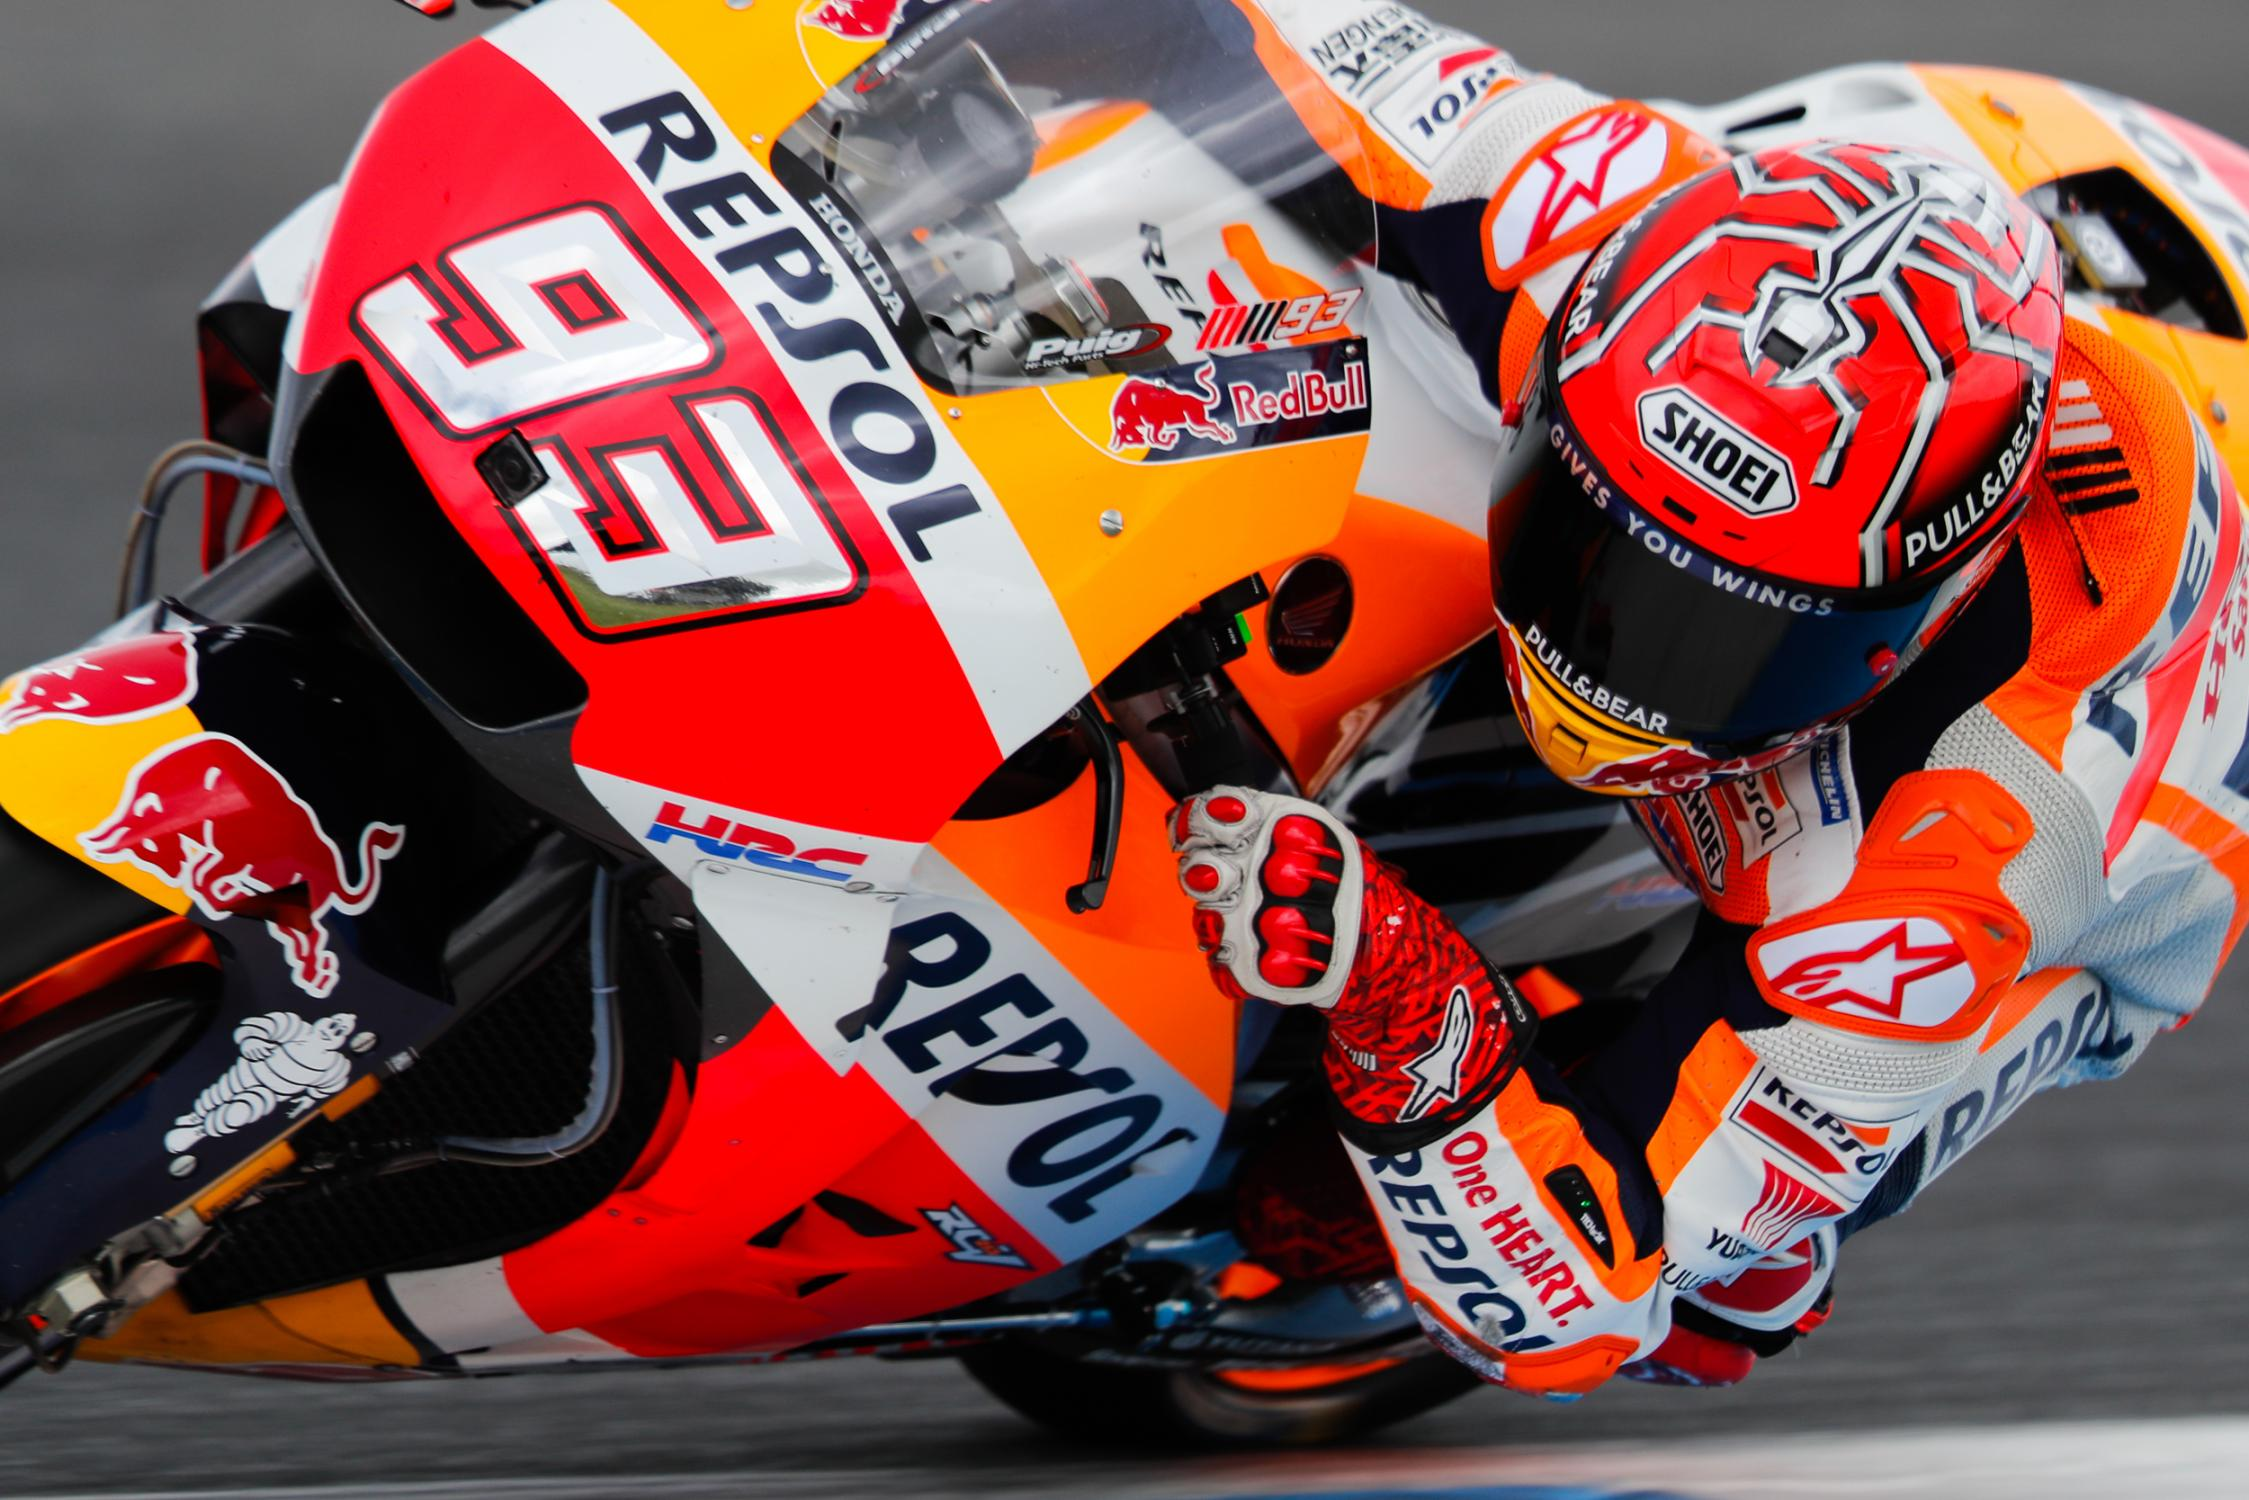 93-marc-marquez-esp_29i4559.gallery_full_top_fullscreen.jpg